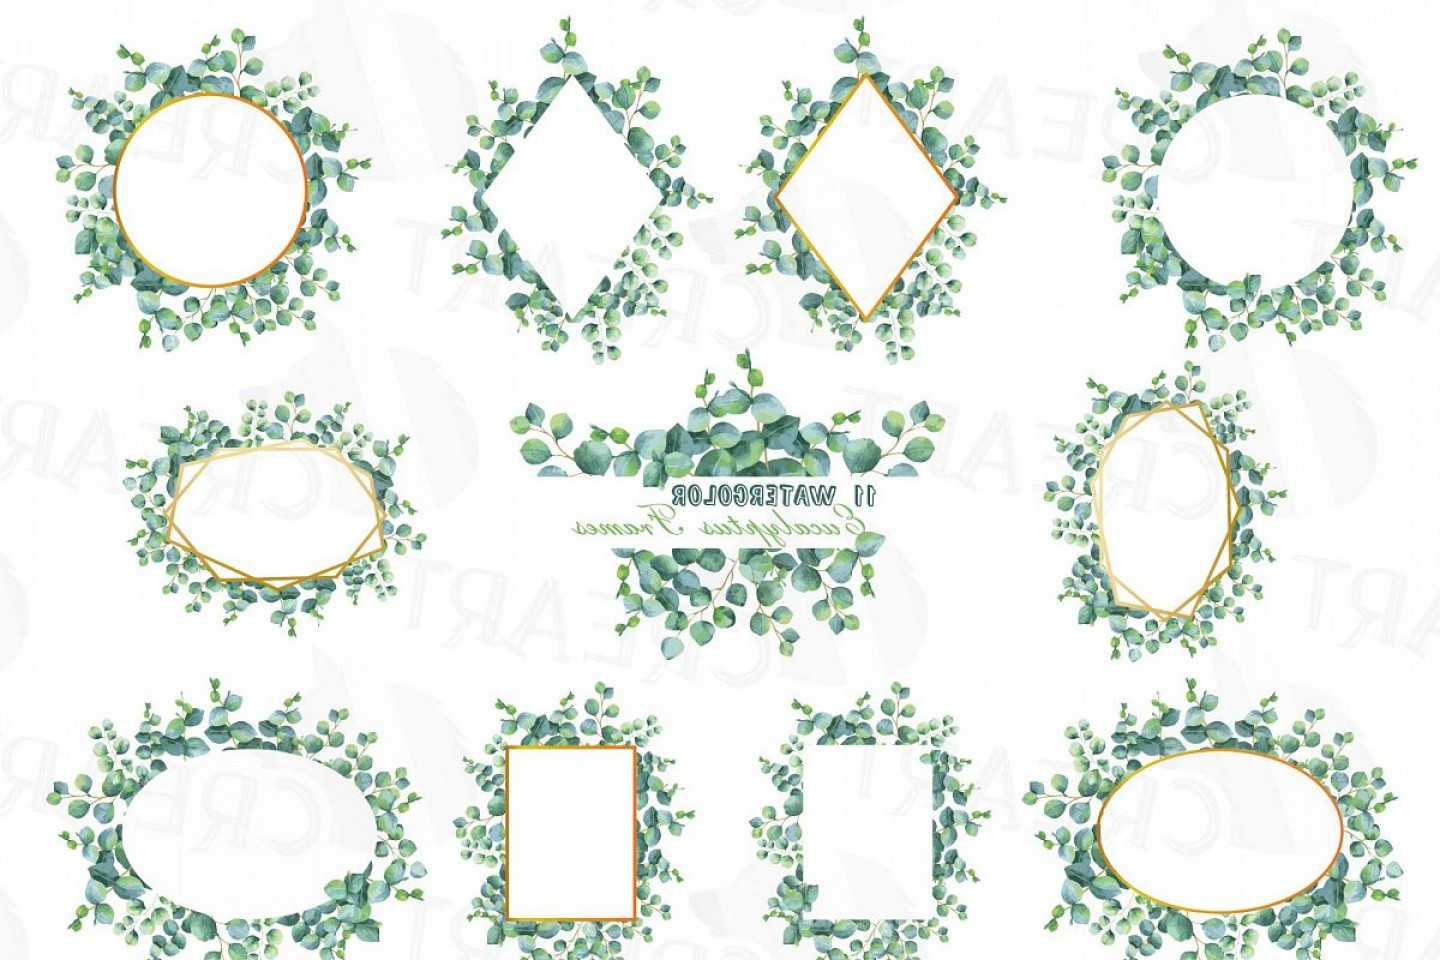 Corel Vector Clip Art: Eucalyptus Frames Watercolor Clip Art Pack Eucalyptus Leaves Design Borders Png Jpg Svg Vector Illustrator And Corel Files Included